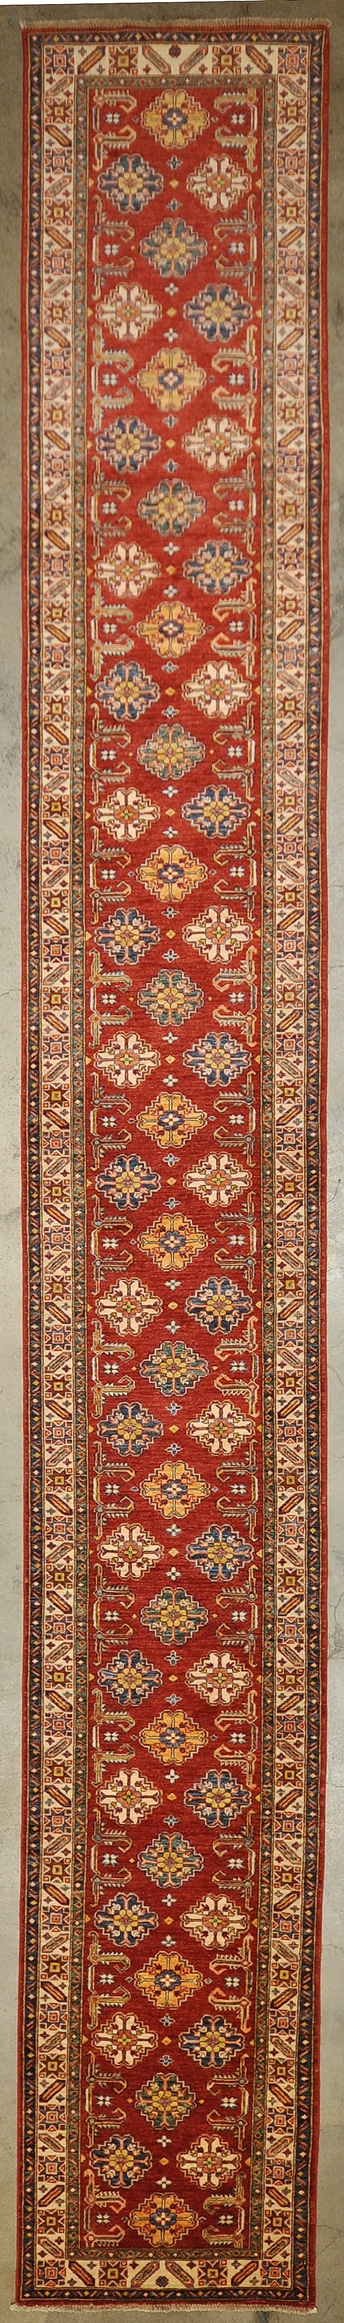 Ziegler & Co Caucasian Runner rugs and more oriental carpet 29792-